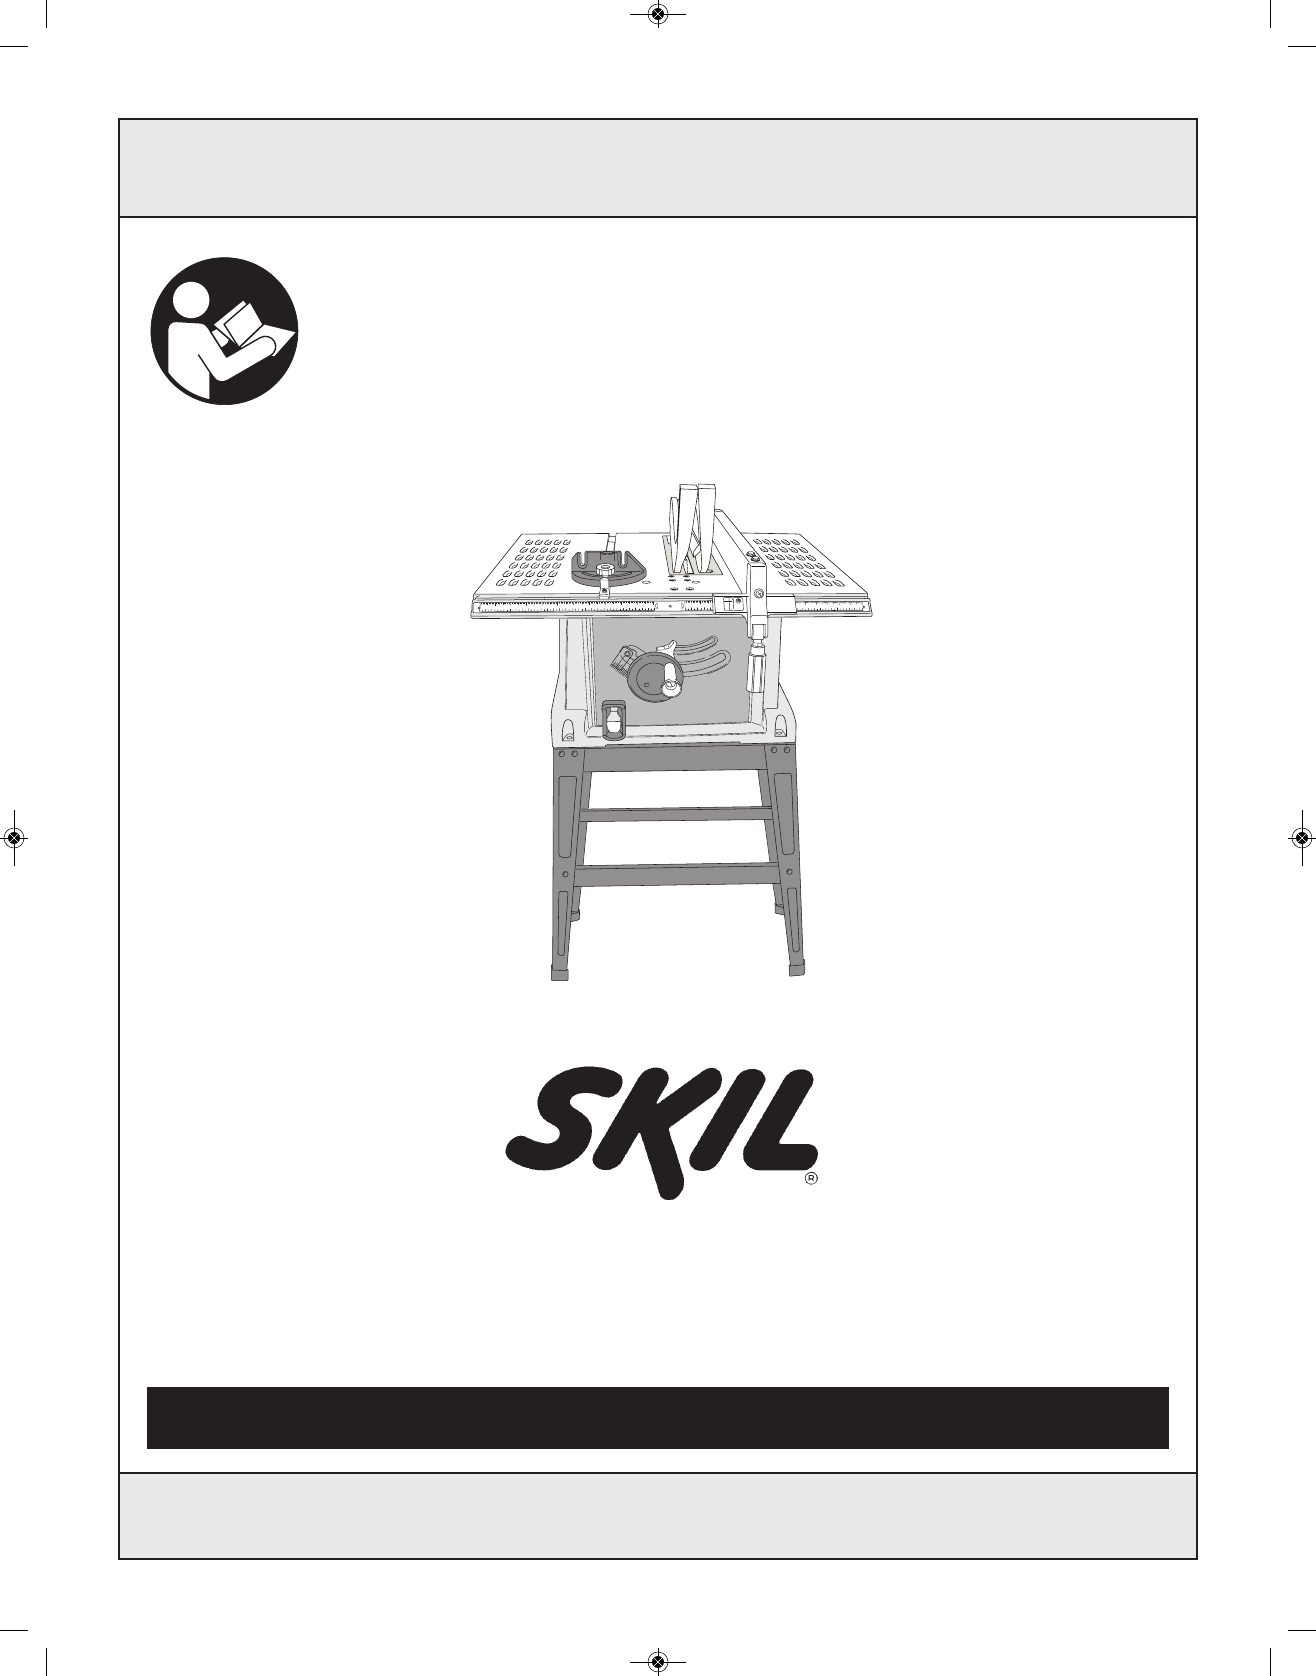 Skil saw 3310 user guide manualsonline greentooth Images